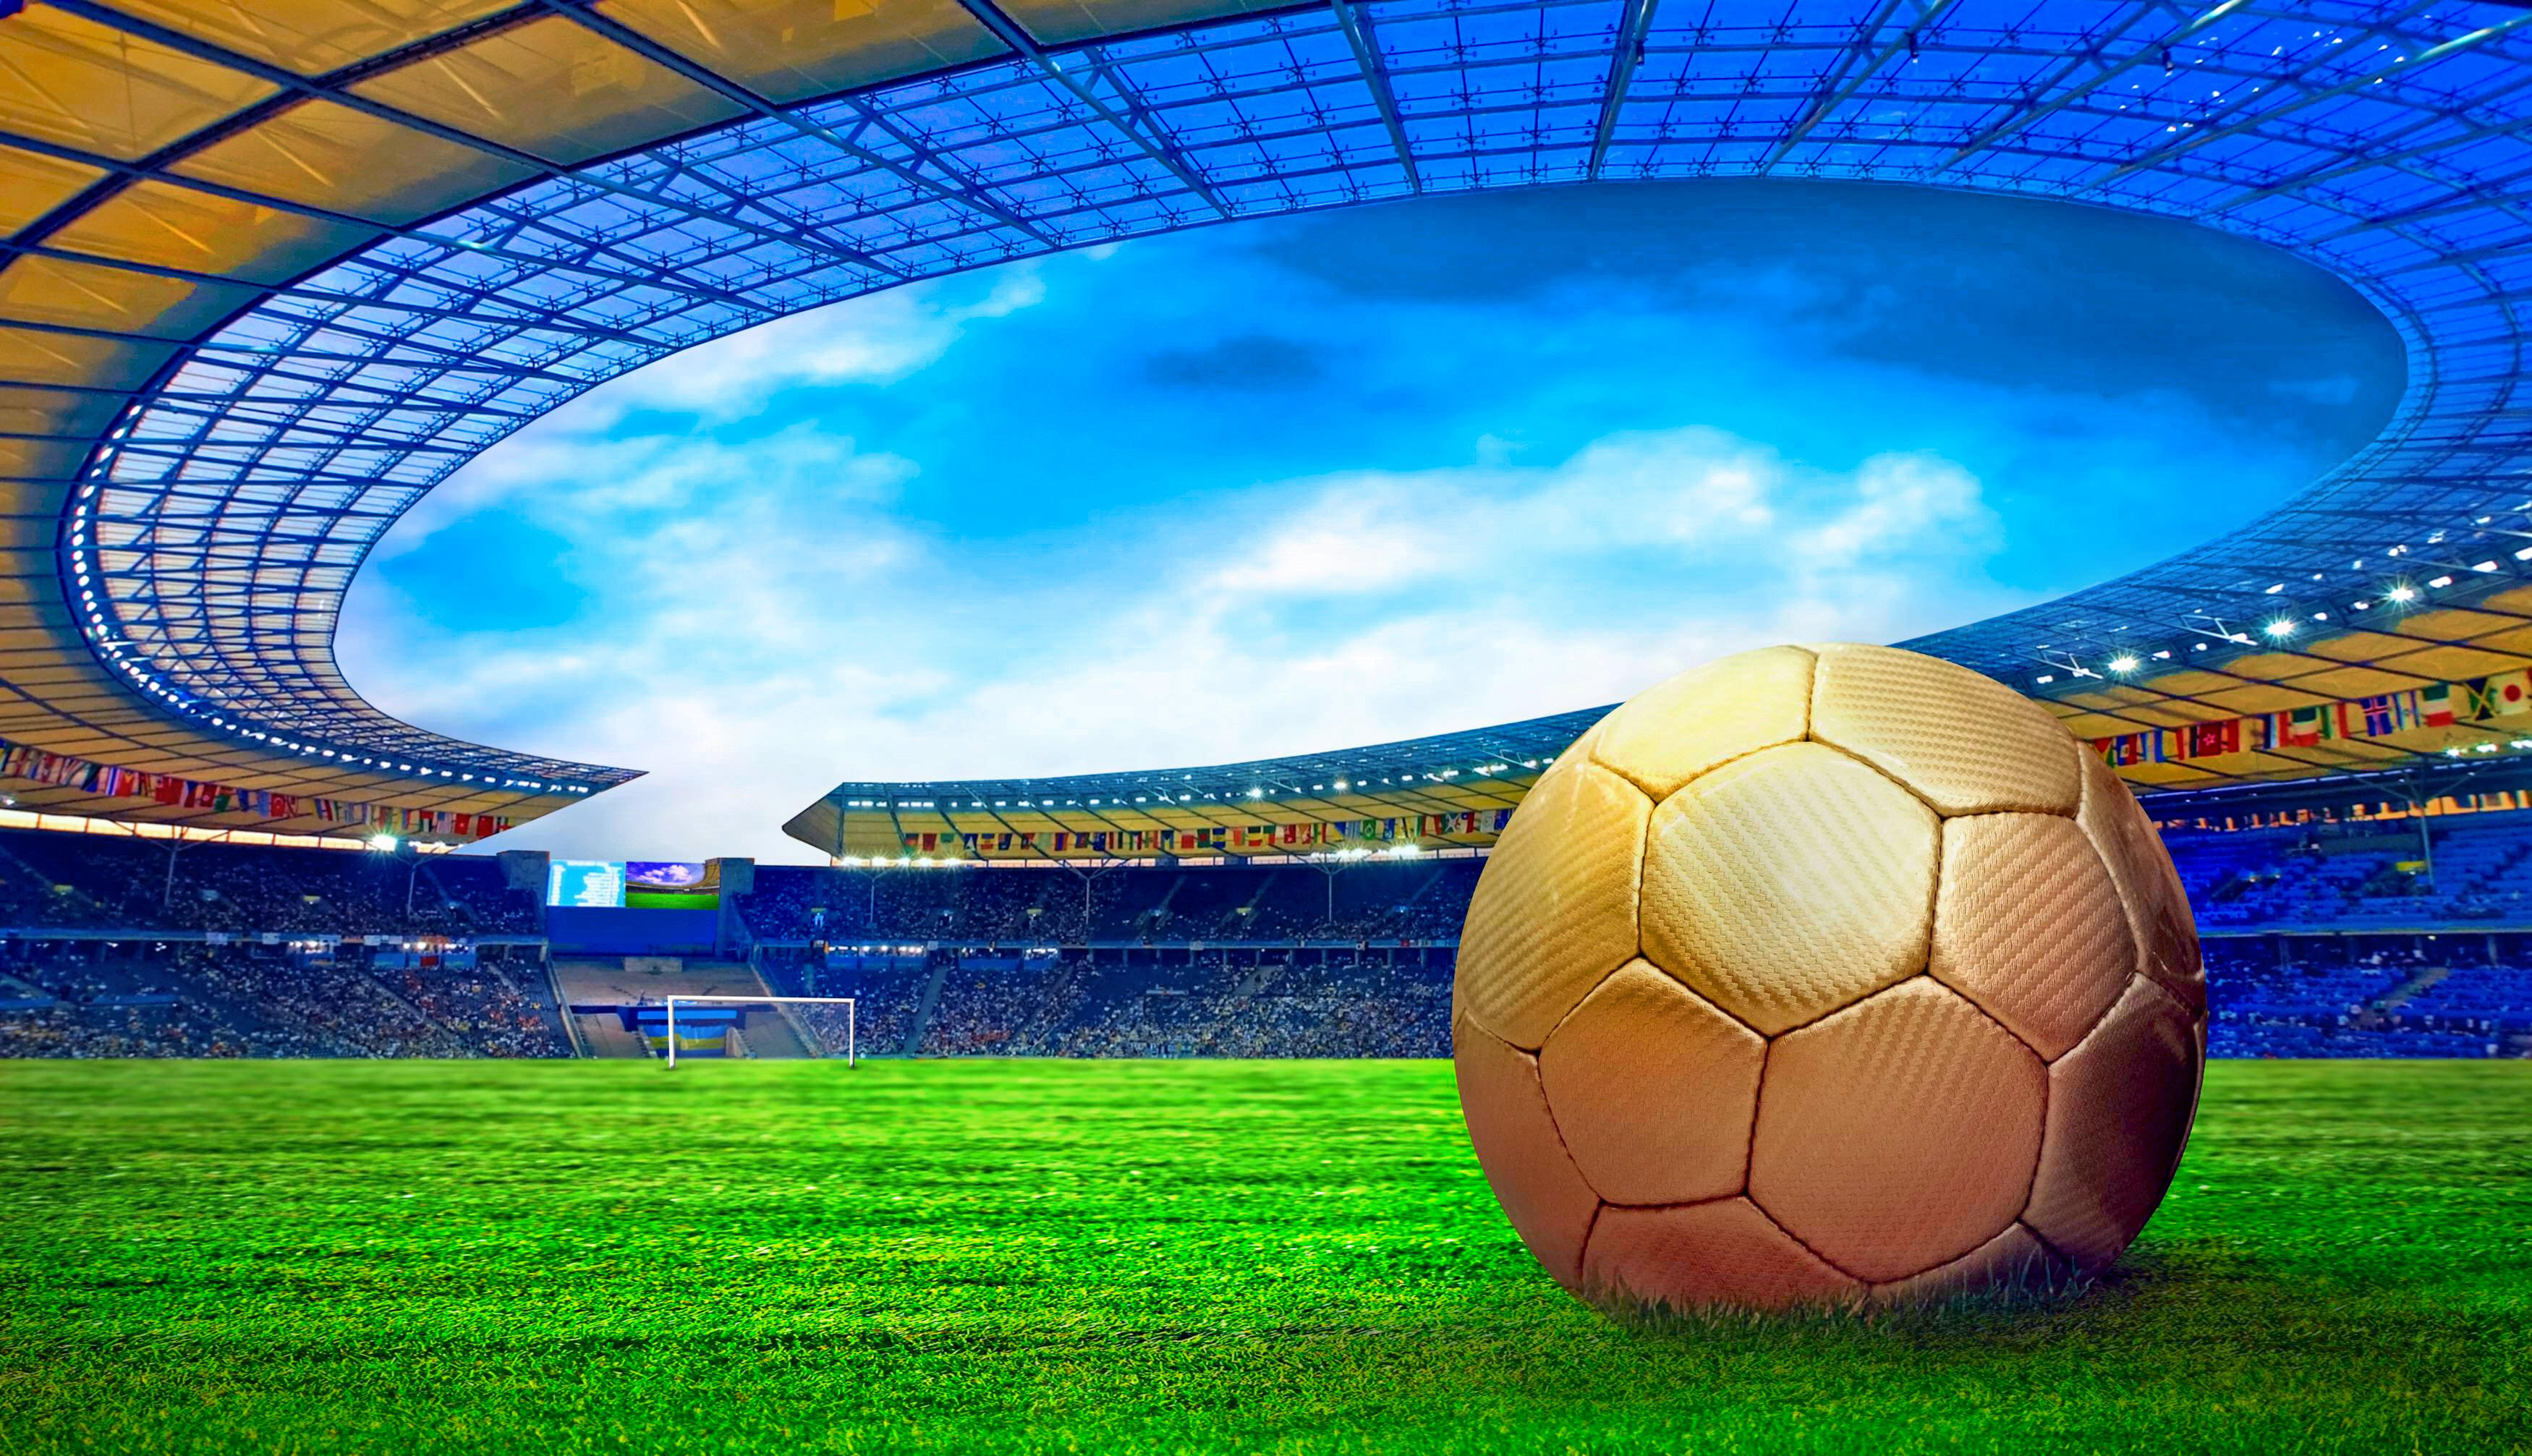 Free Soccer Wallpaper: 16+ Magnificent Football Backgrounds